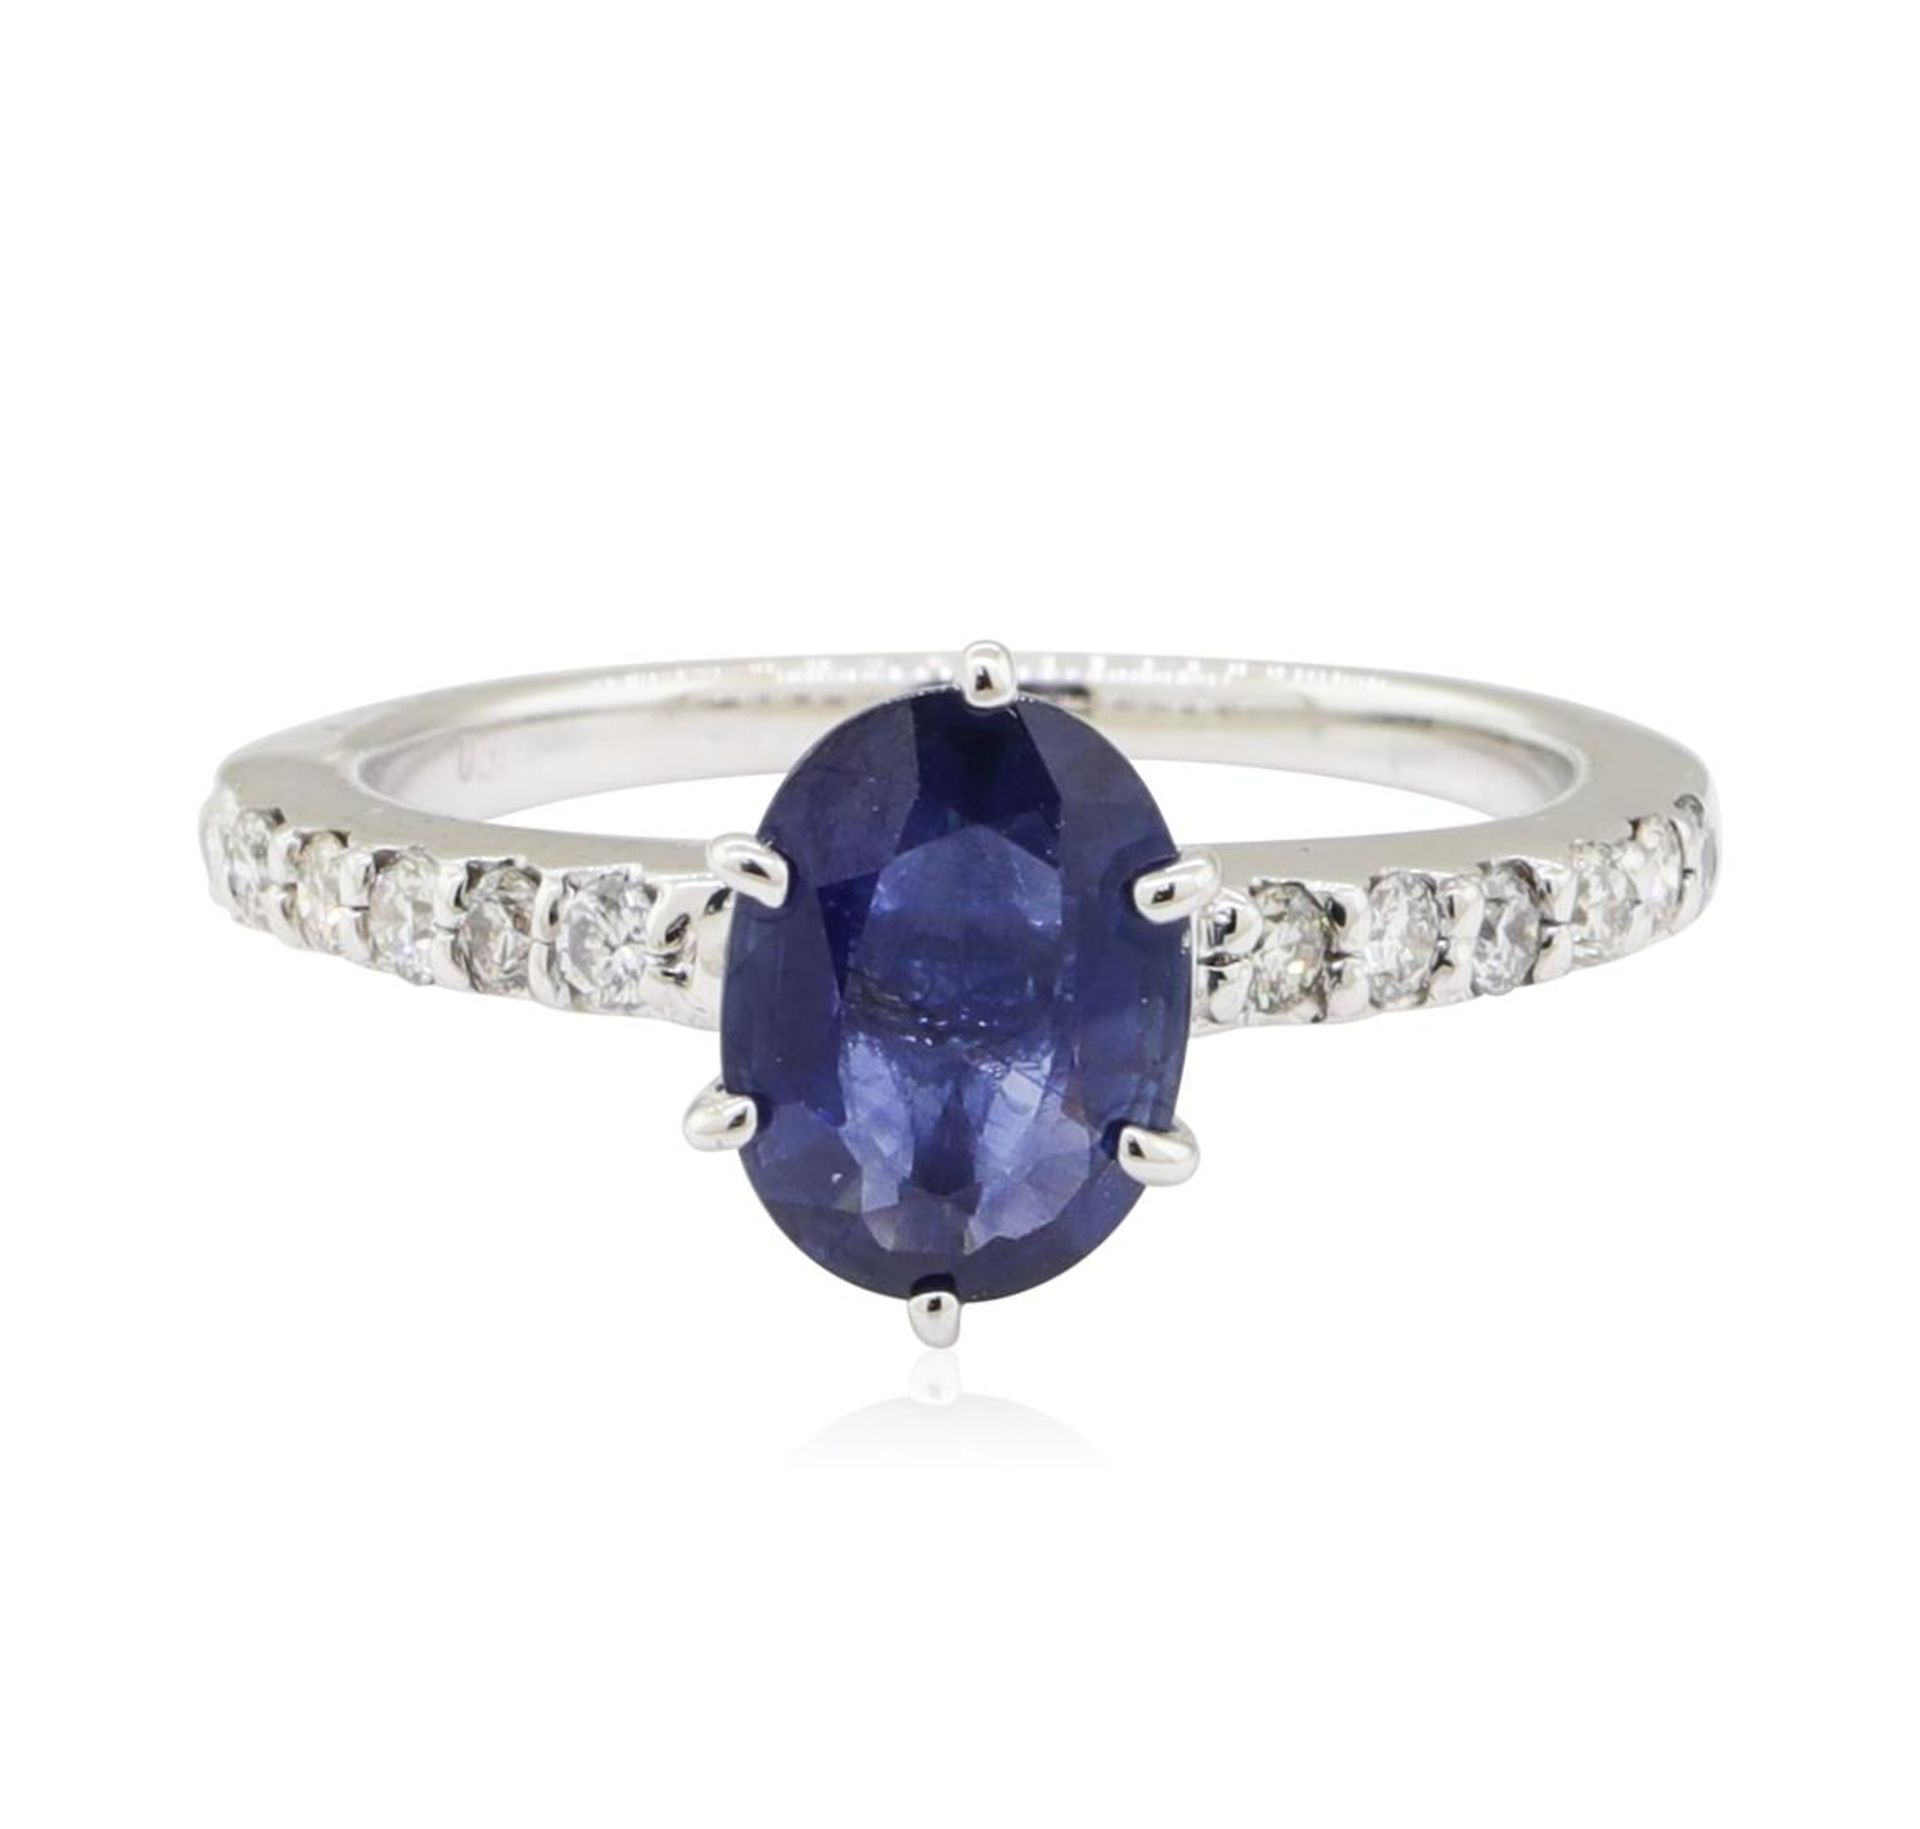 1.25ctw Sapphire and Diamond Ring - 14KT White Gold - Image 2 of 4